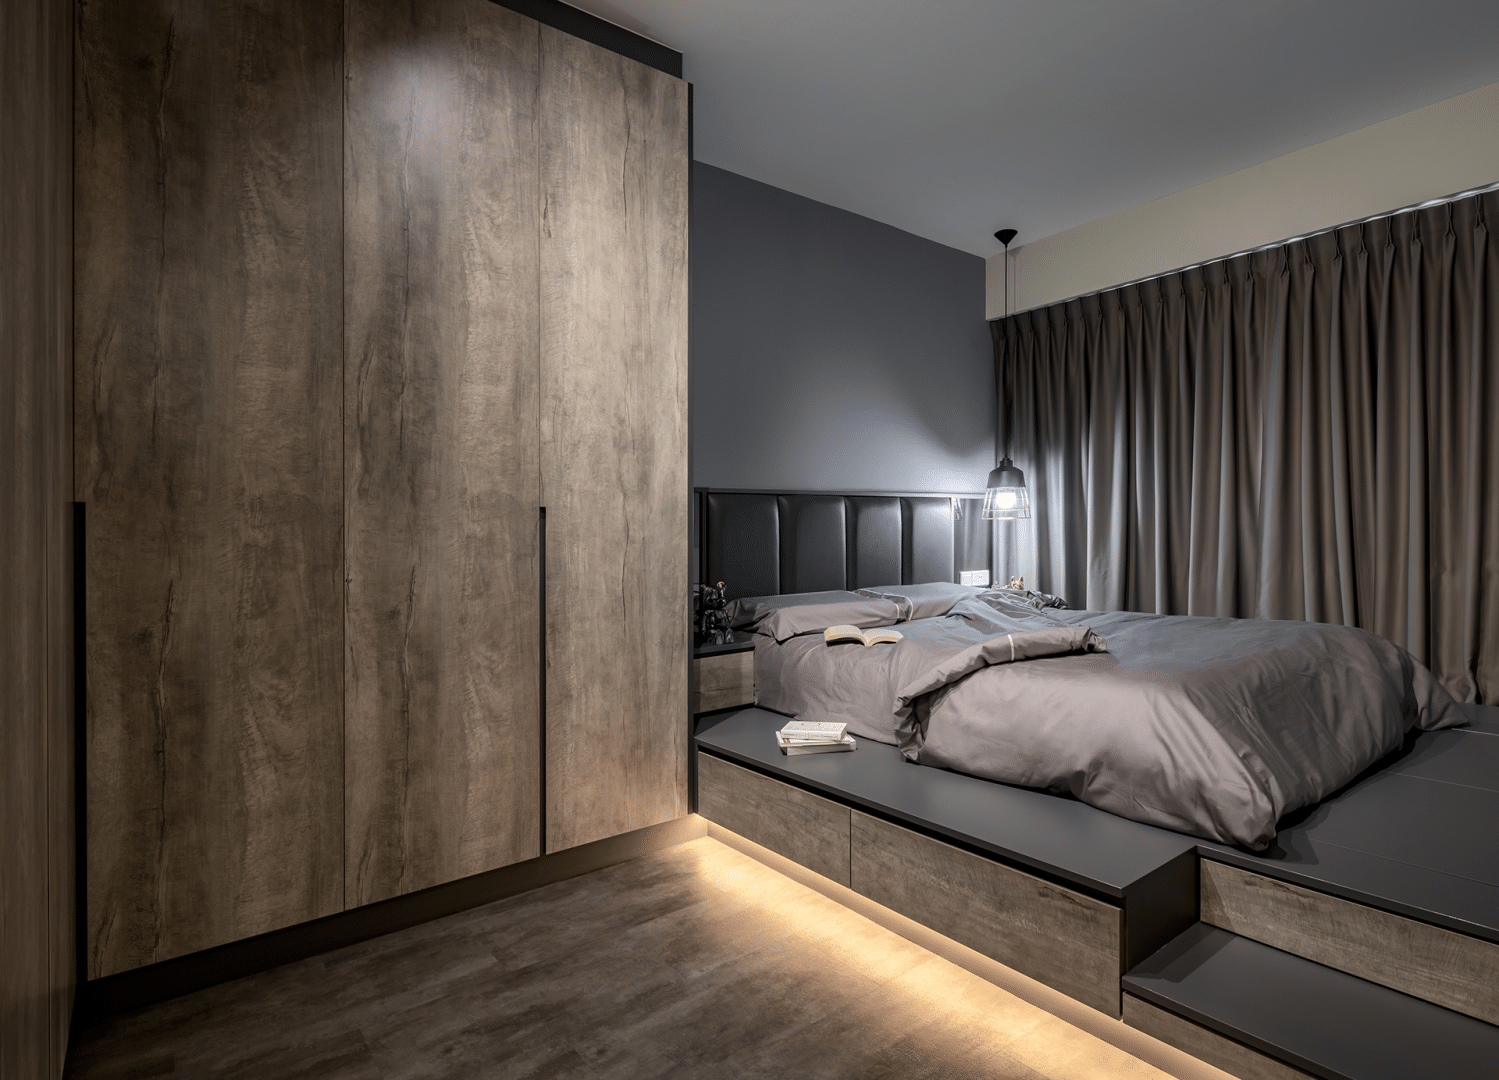 9 Practical Lessons for Small HDB Bedrooms Design [Tips by Weiken]